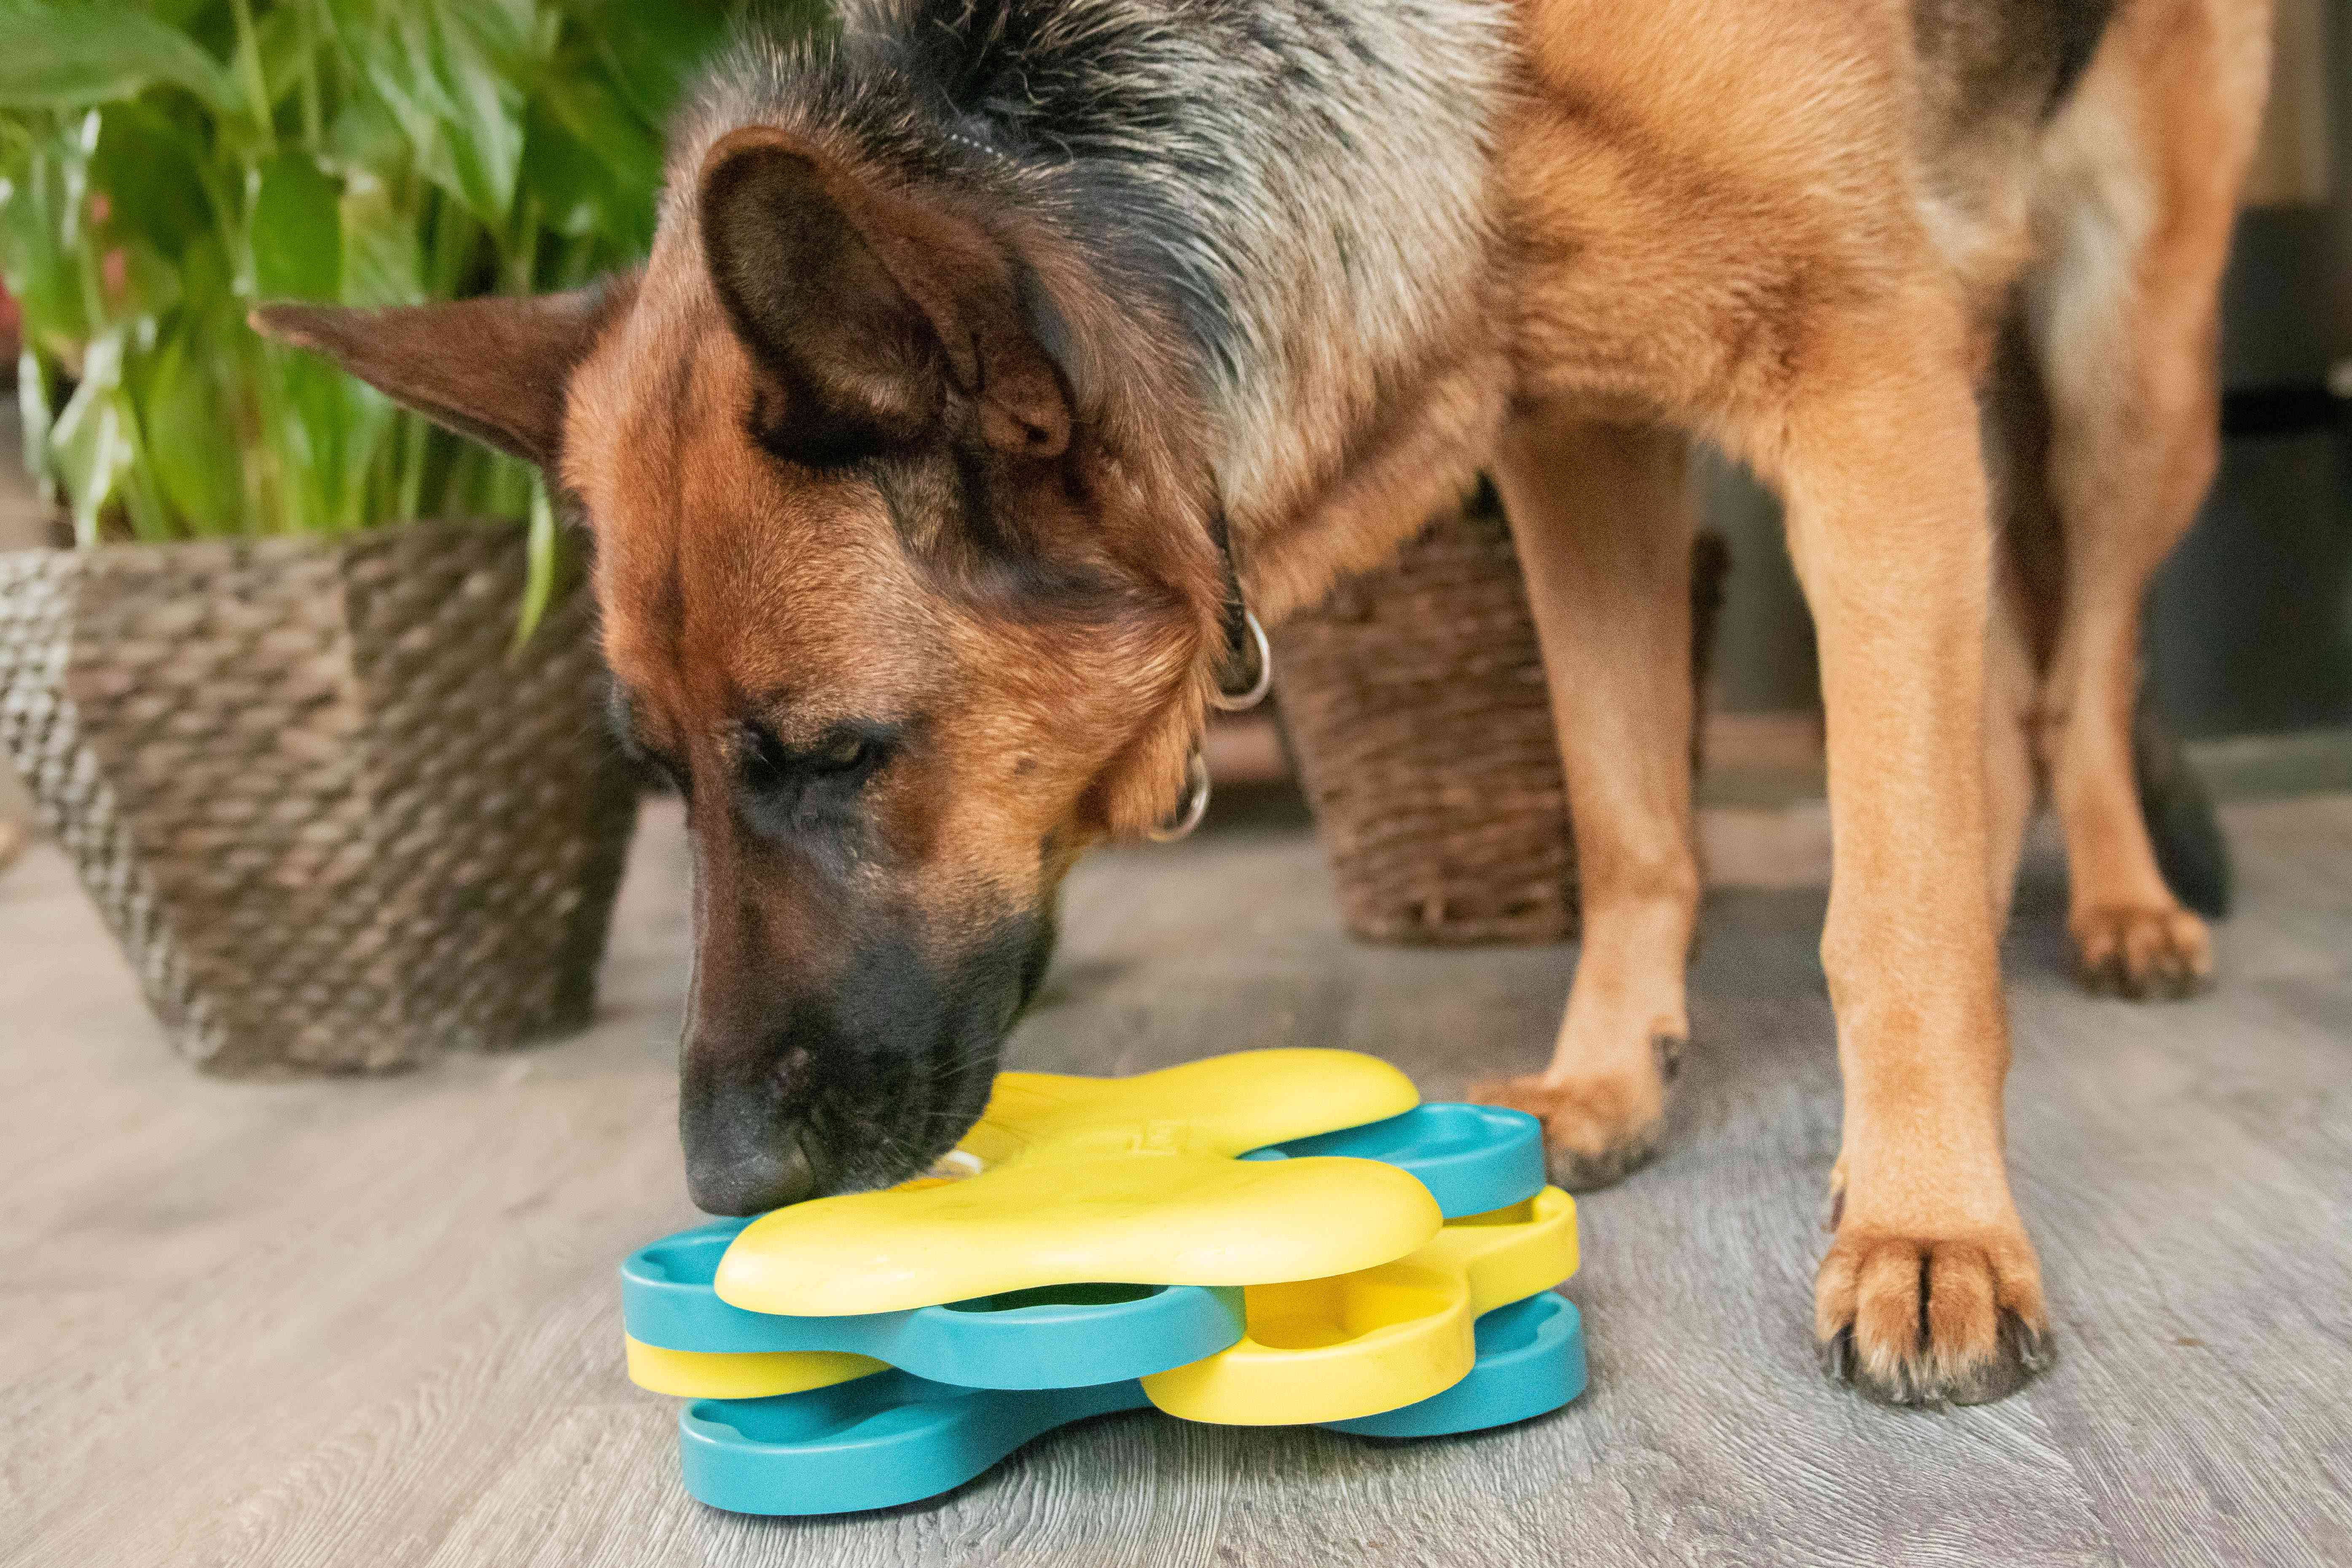 German shepard dog playing with pet puzzle toy